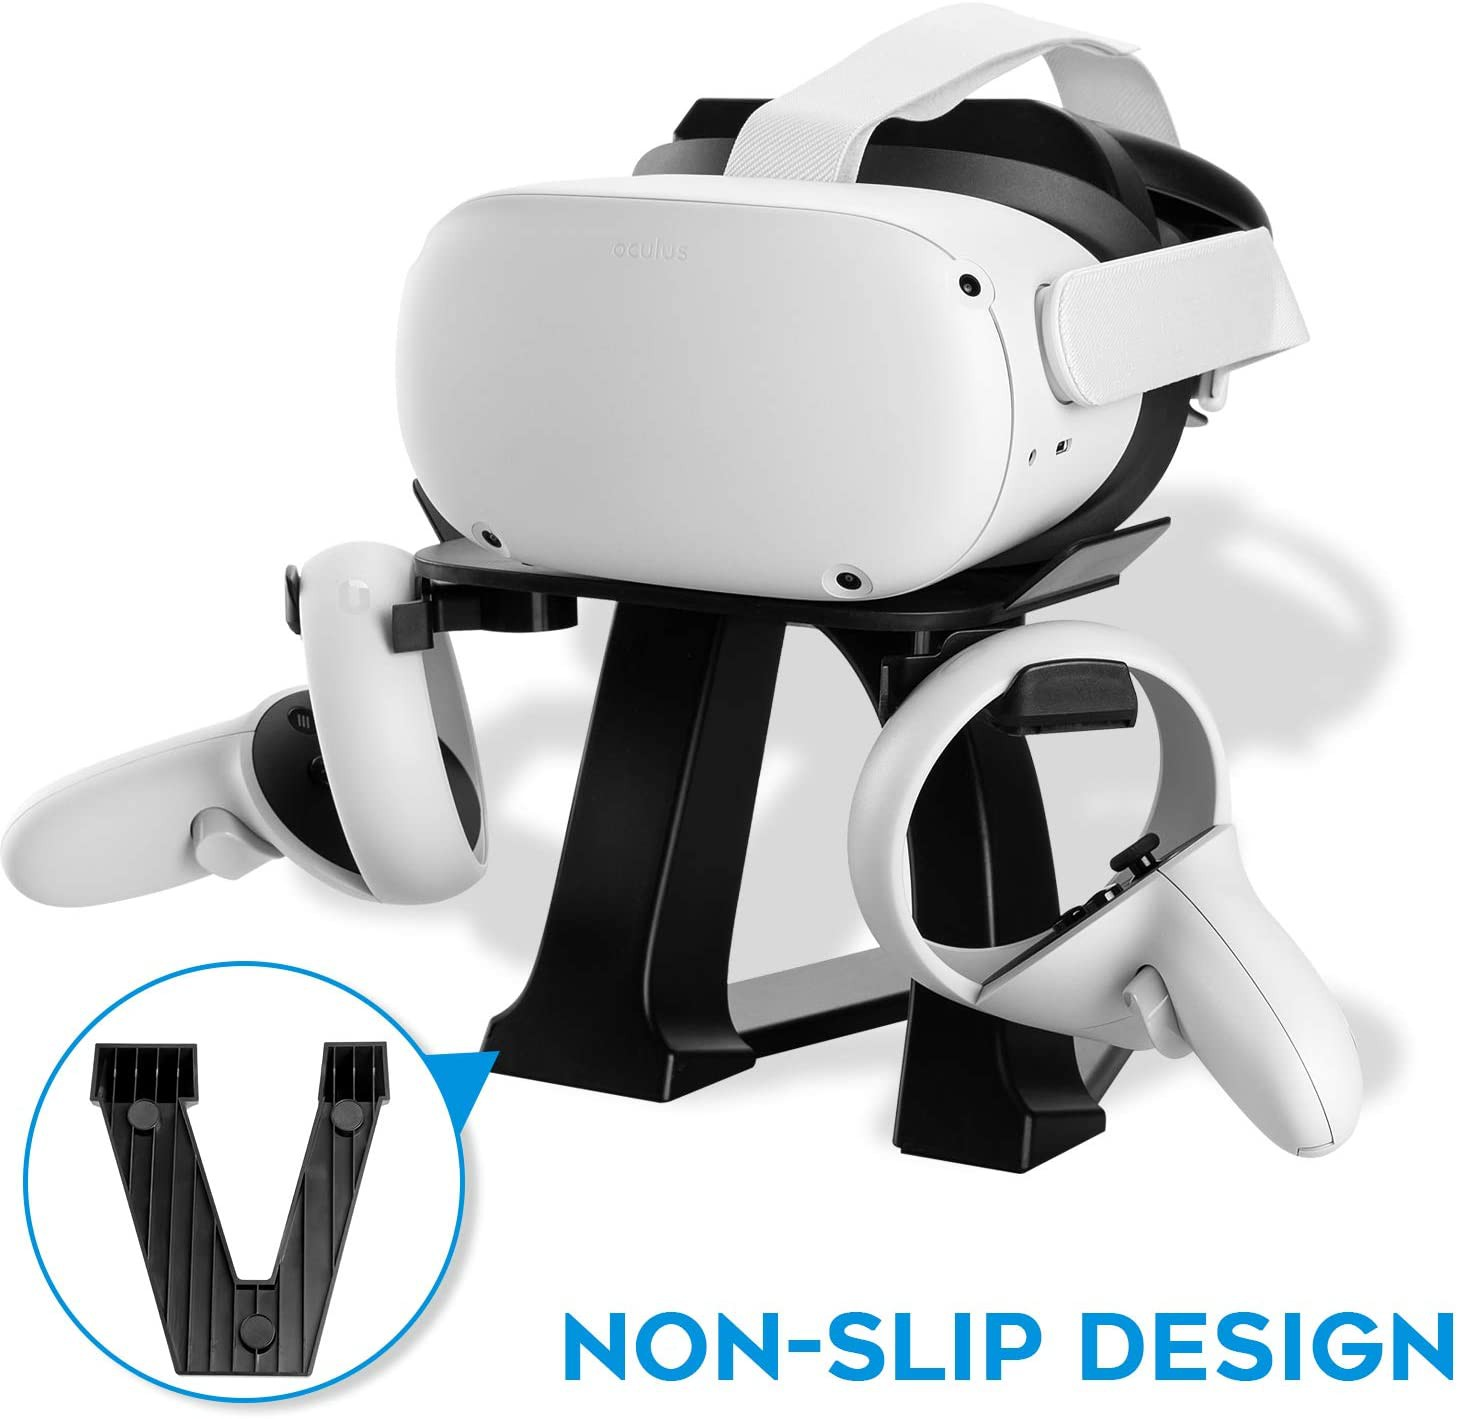 NEWZEROL VR Stand for Headset and Controller for Oculus